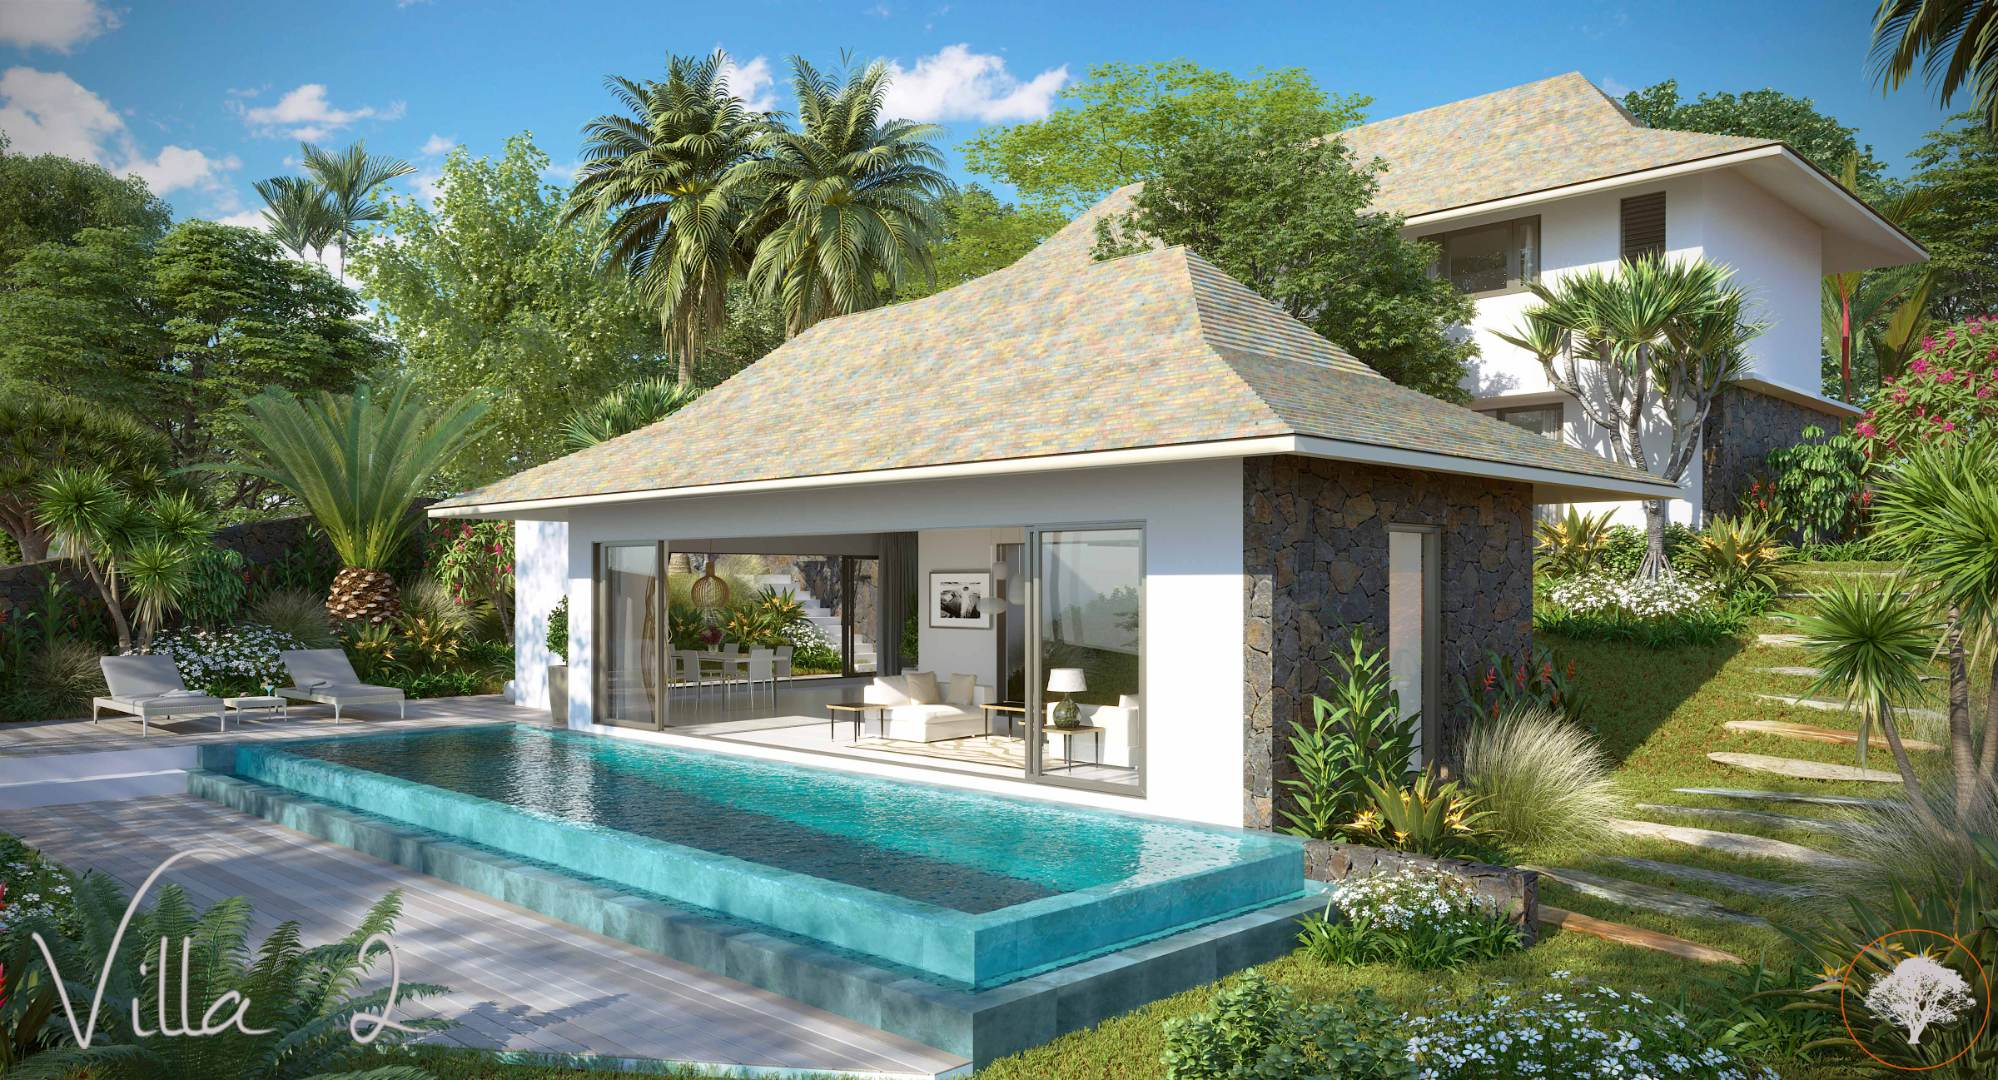 4 Bedroom House For Sale in Tamarin